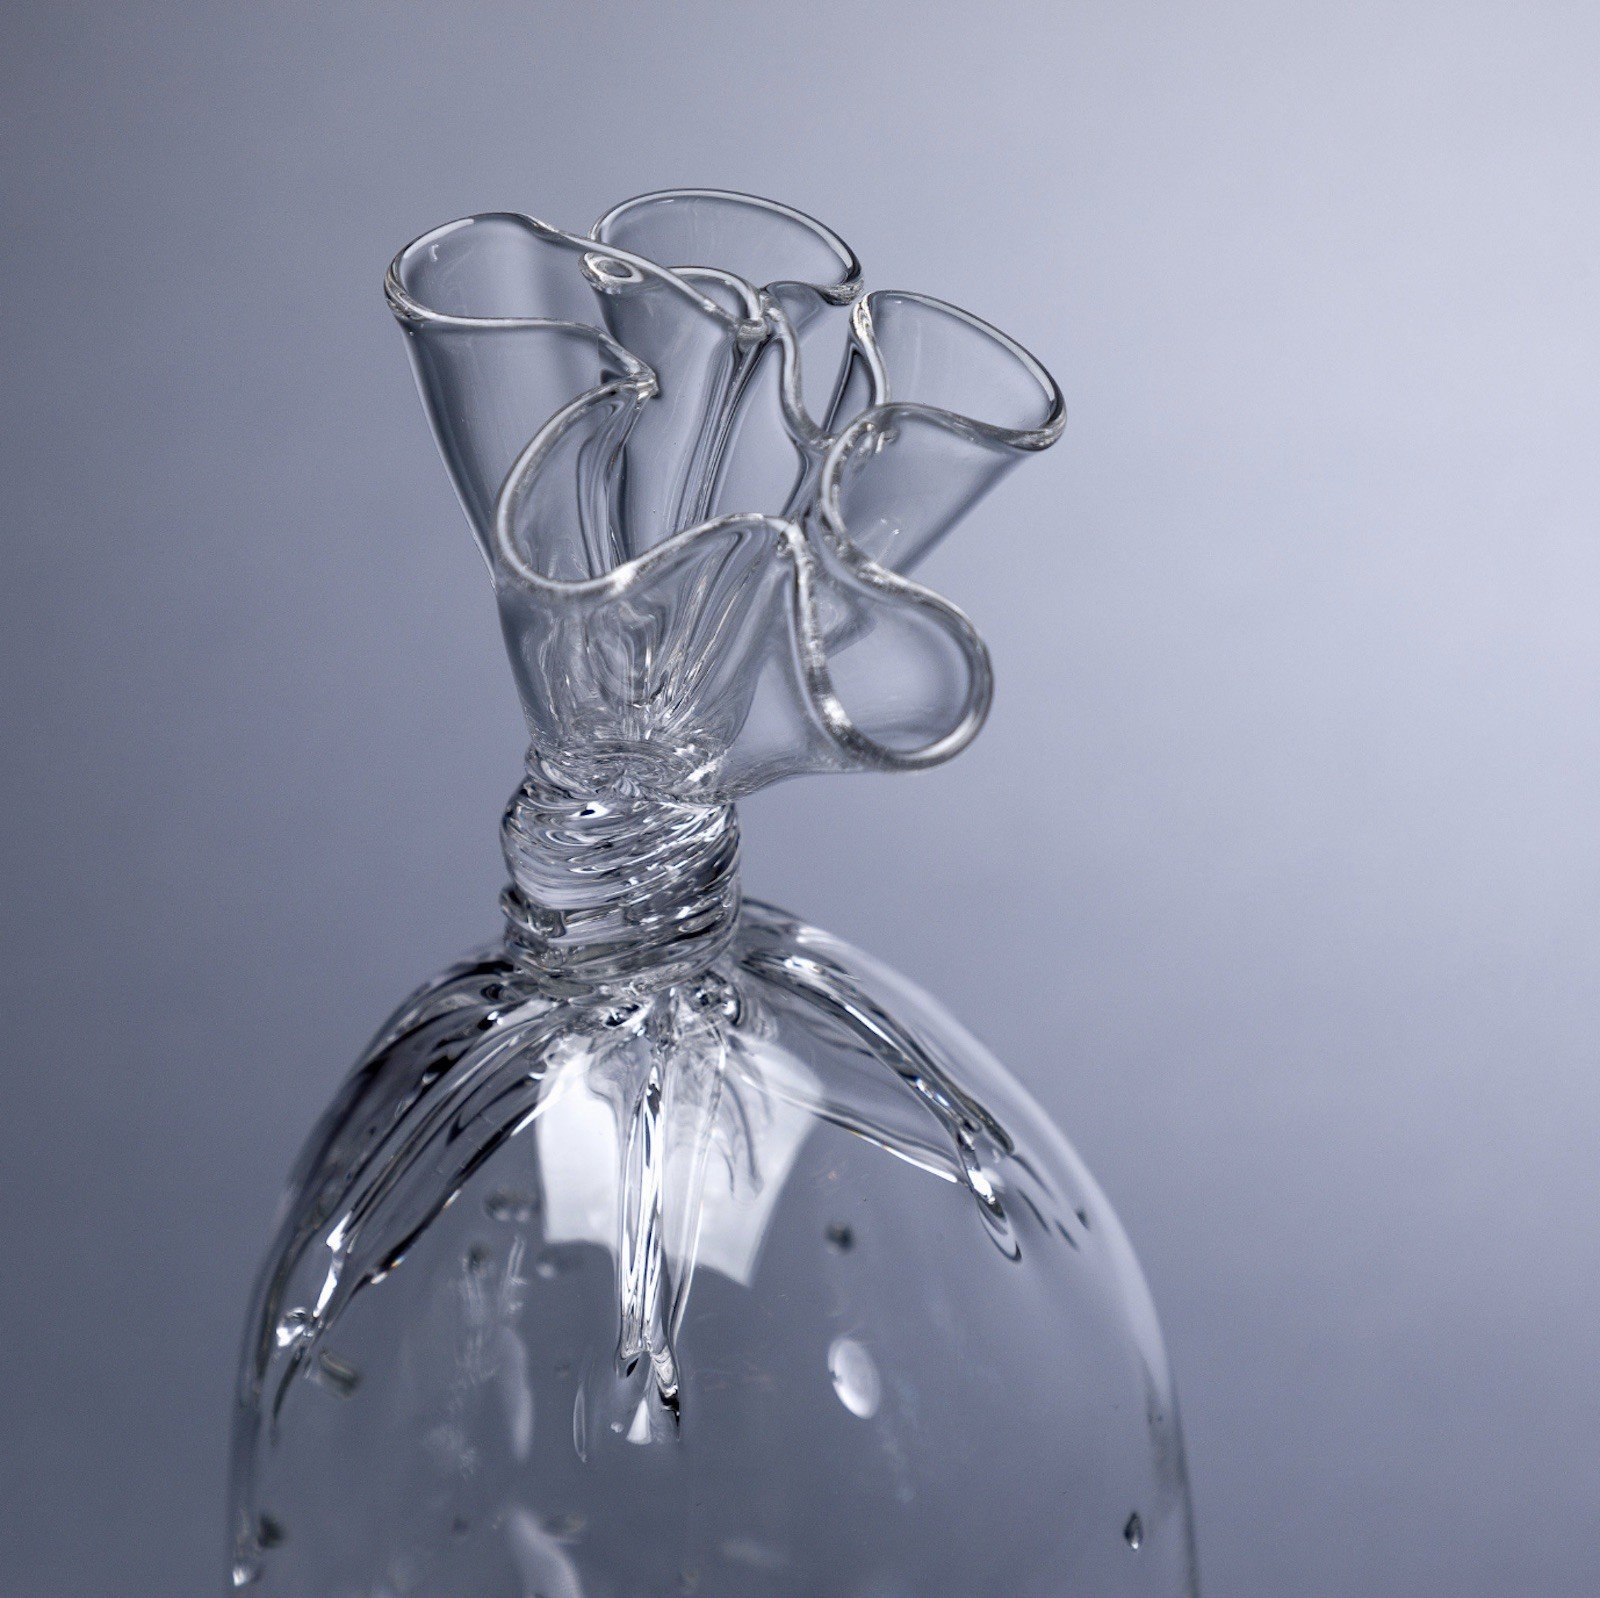 iGNANT-Design-Dylan-Martinez-Water-Bags-007